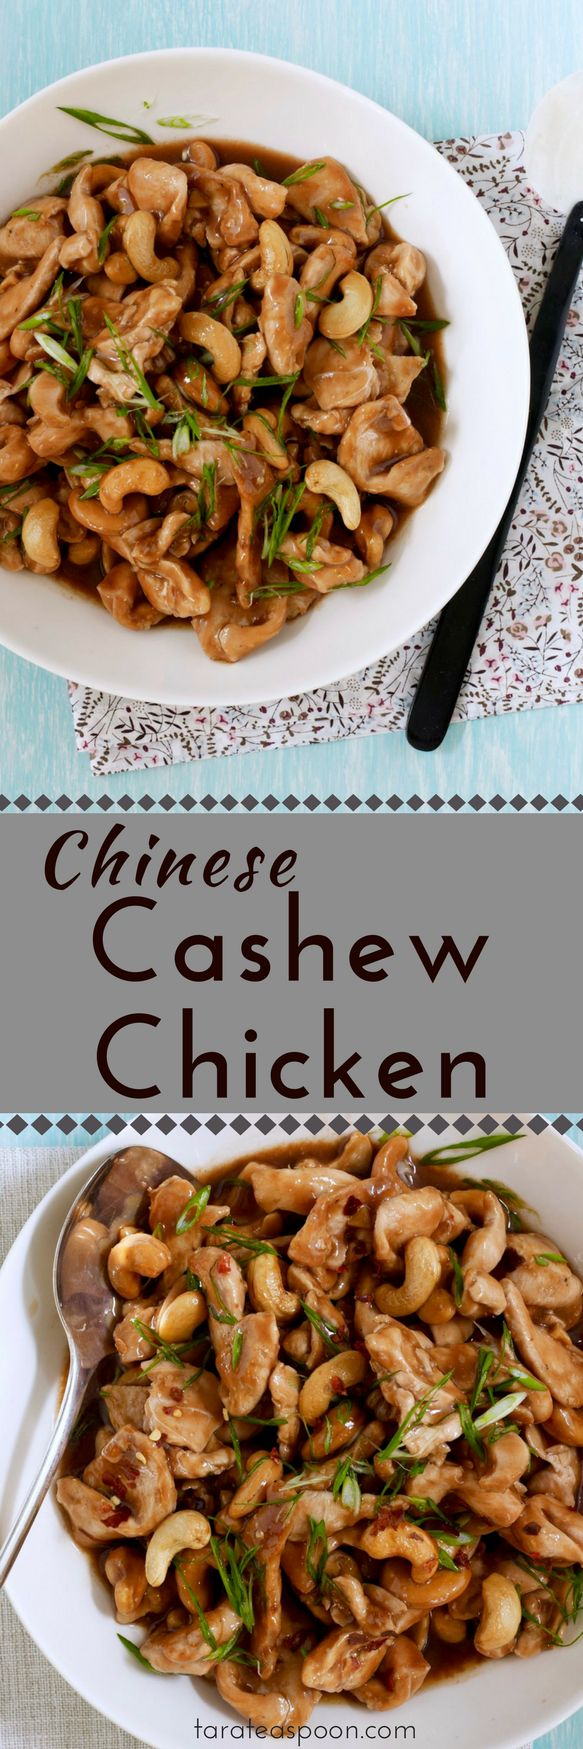 Cashew Chicken made at home pin